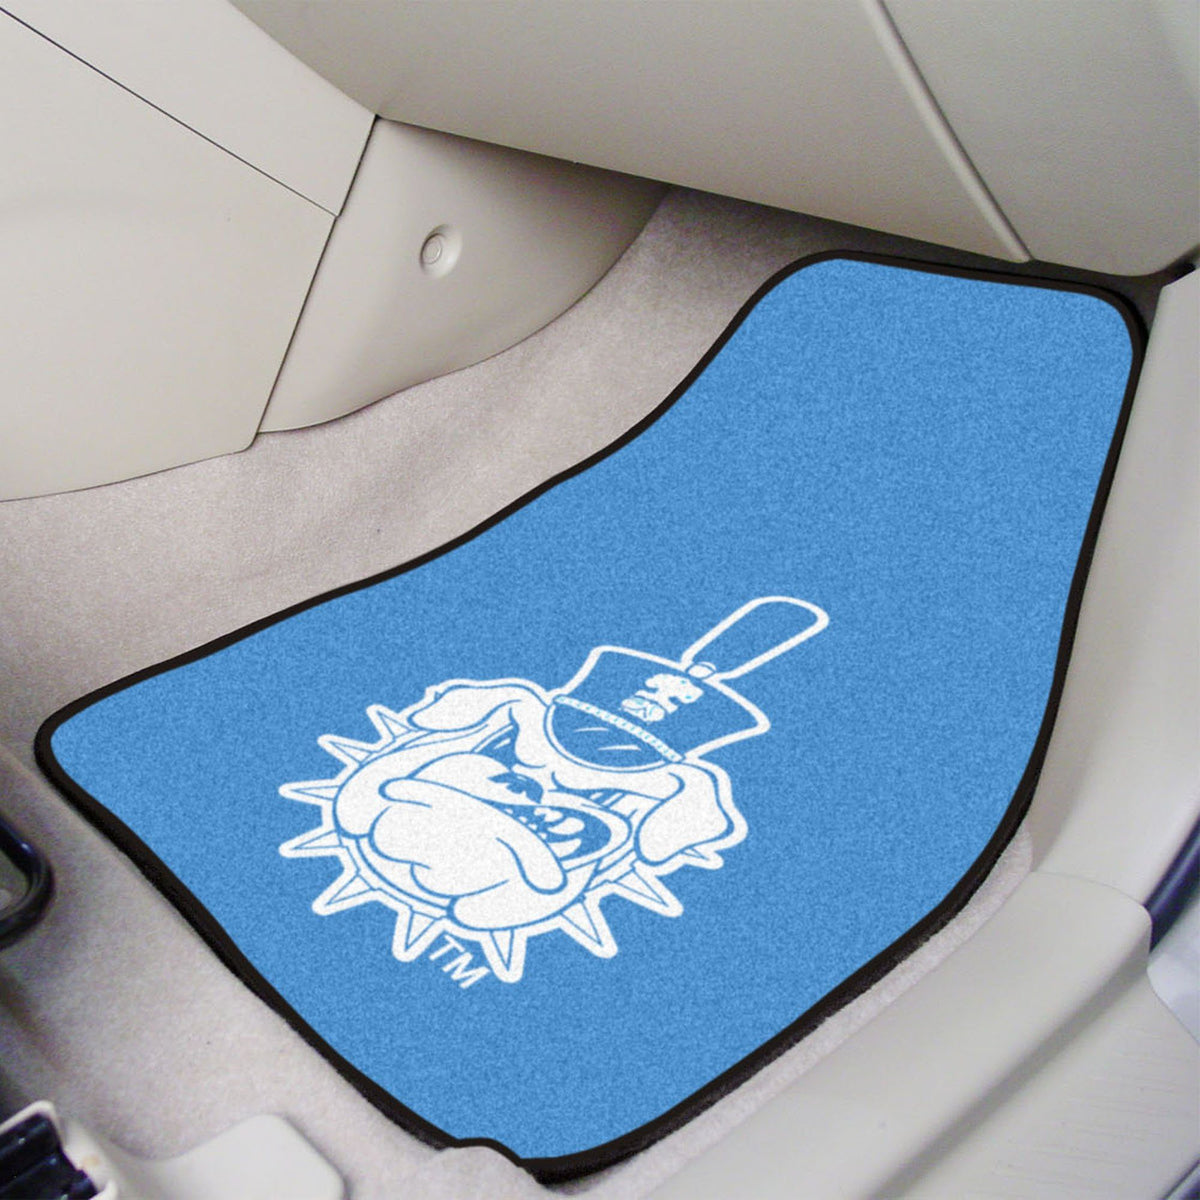 Collegiate - Carpet Car Mat, 2-Piece Set: T - Z Collegiate Car Mat, Front Car Mats, 2-pc Carpet Car Mat Set, Collegiate, Auto Fan Mats The Citadel